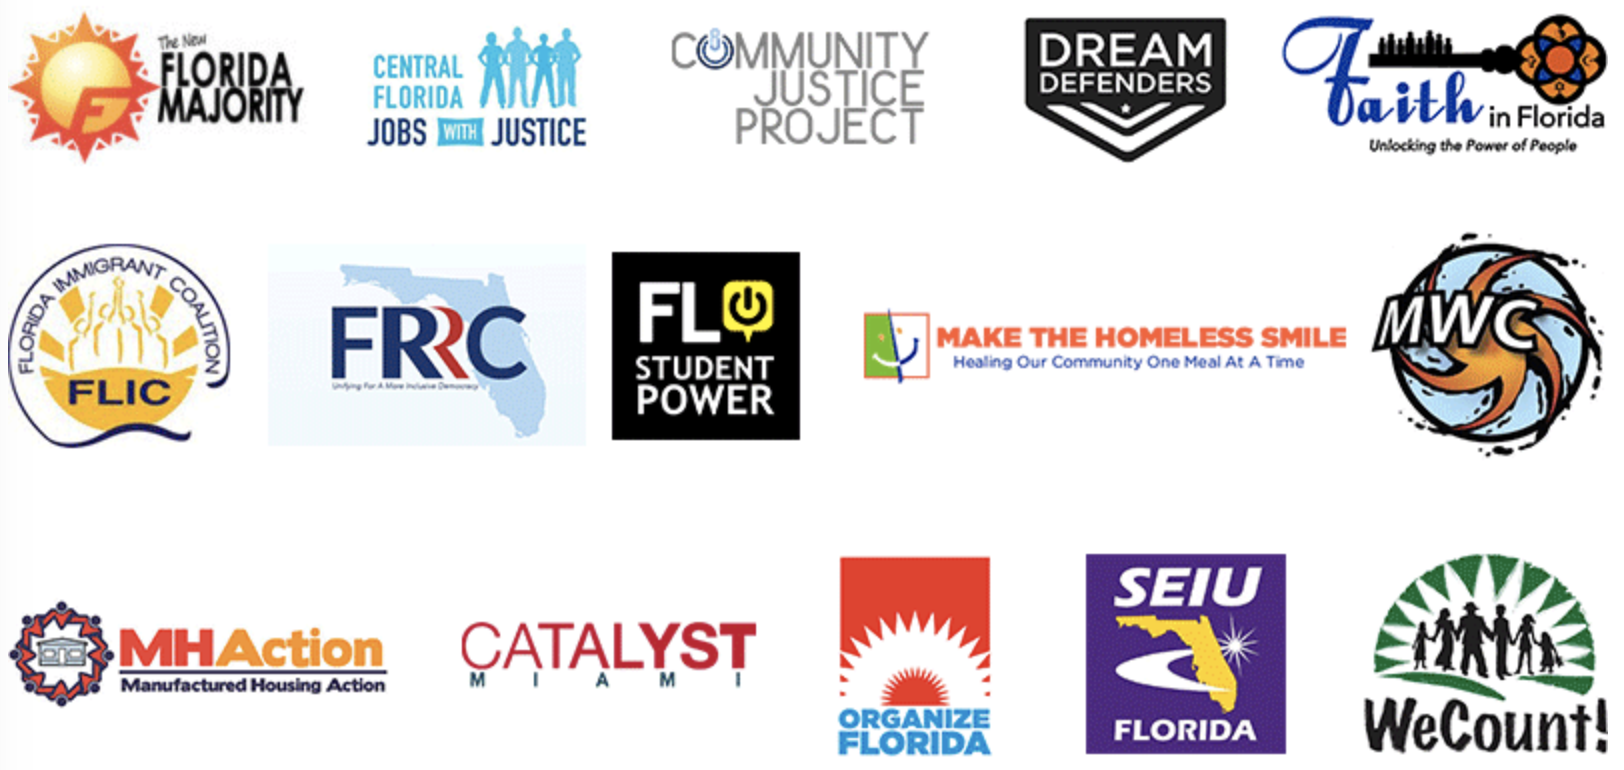 Turn on images to see the Florida hurricane relief fund image.